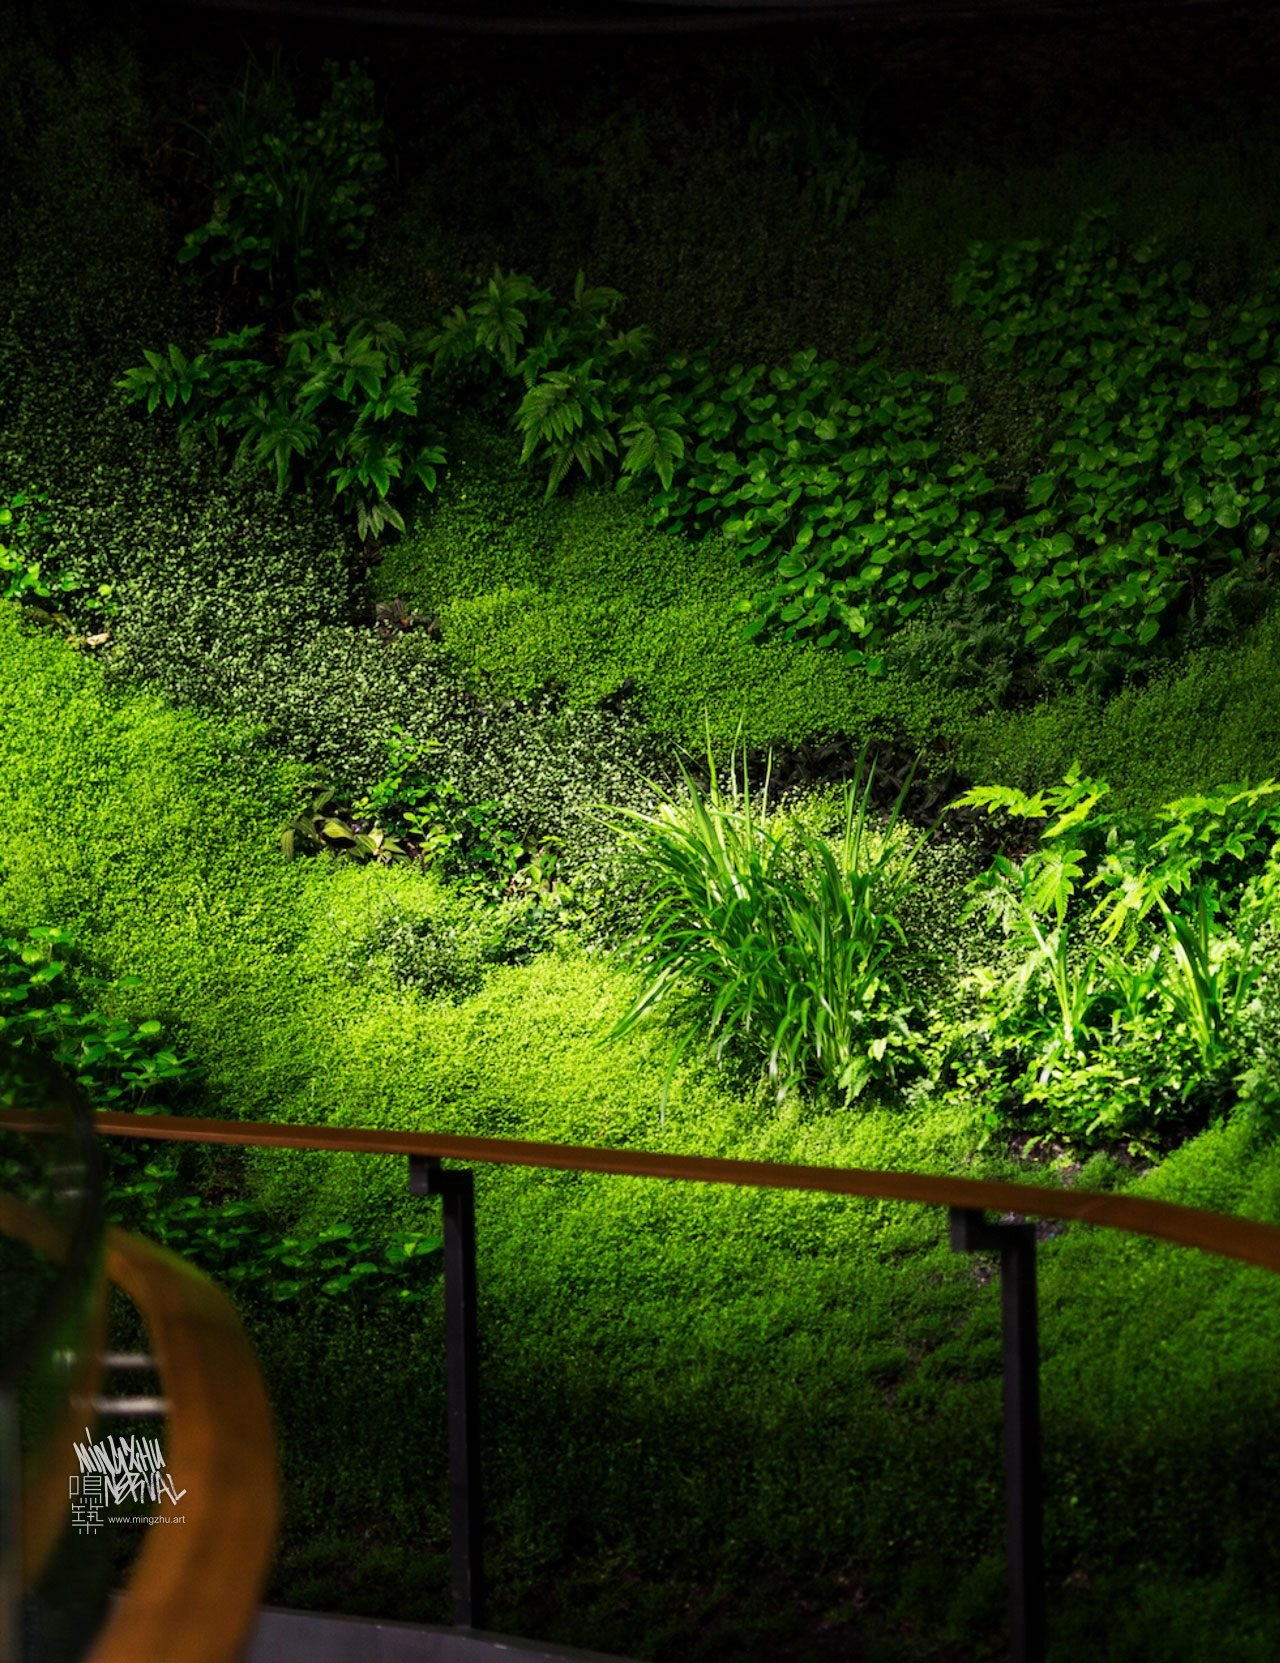 At Mingzhu Nerval, we thrive at creating the most beautiful vertical gardens in the world. For this private art foundation, we created a magical forest design - Chengdu, 2016.